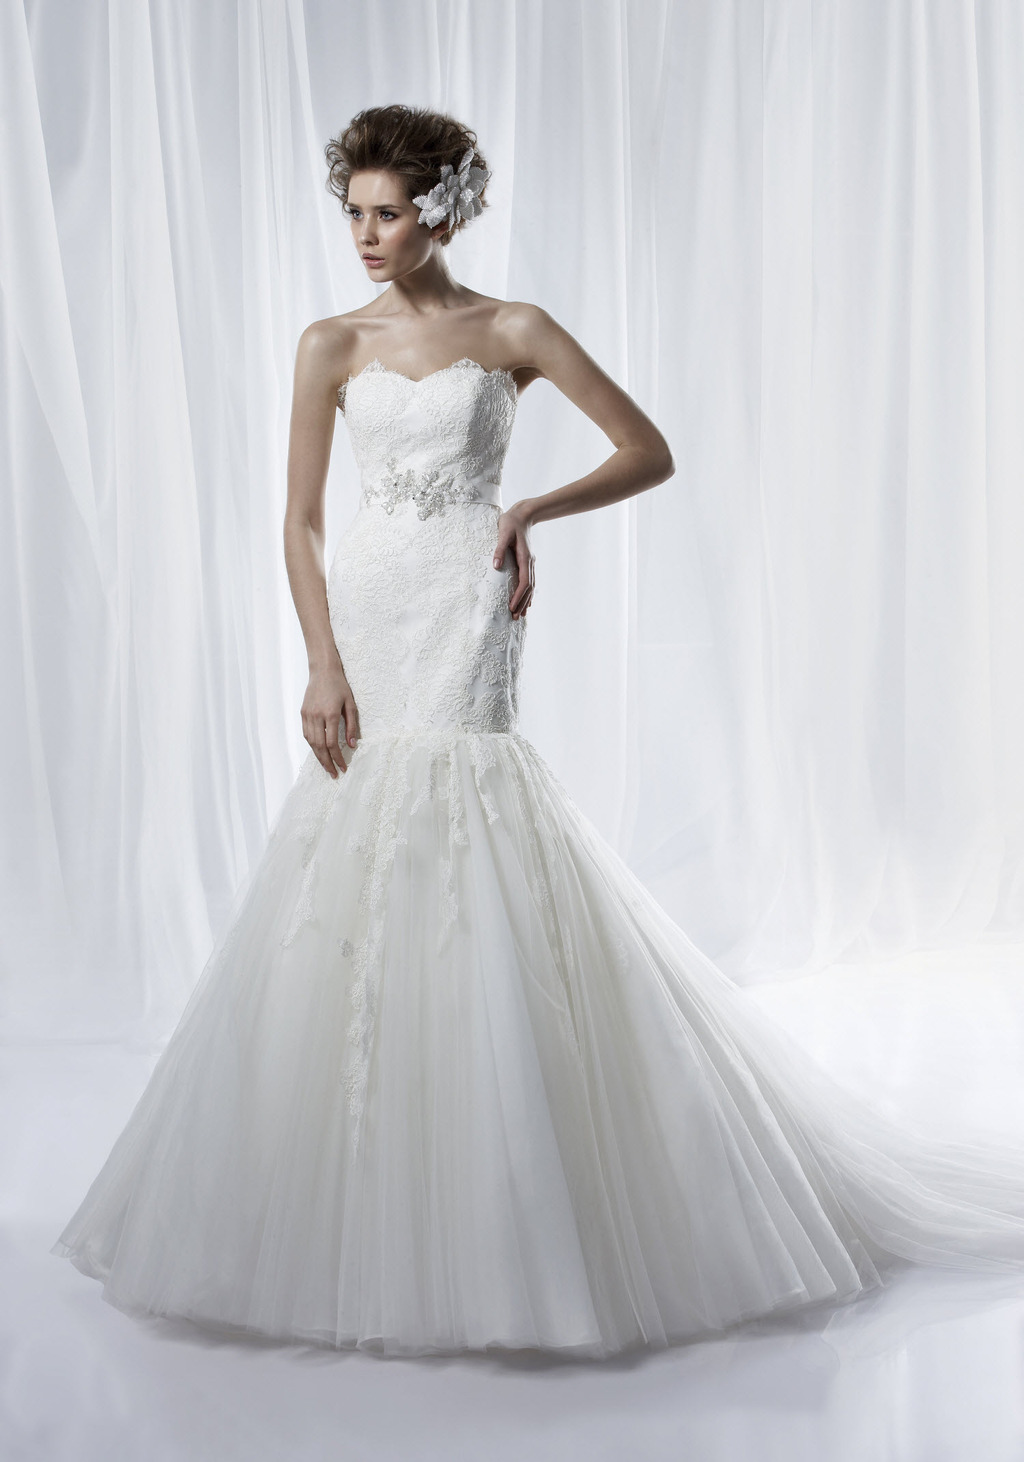 Anjolique-c105a-2012-wedding-dress-strapless-mermaid-romantic-lace-tulle-strapless-bridal-belt.full